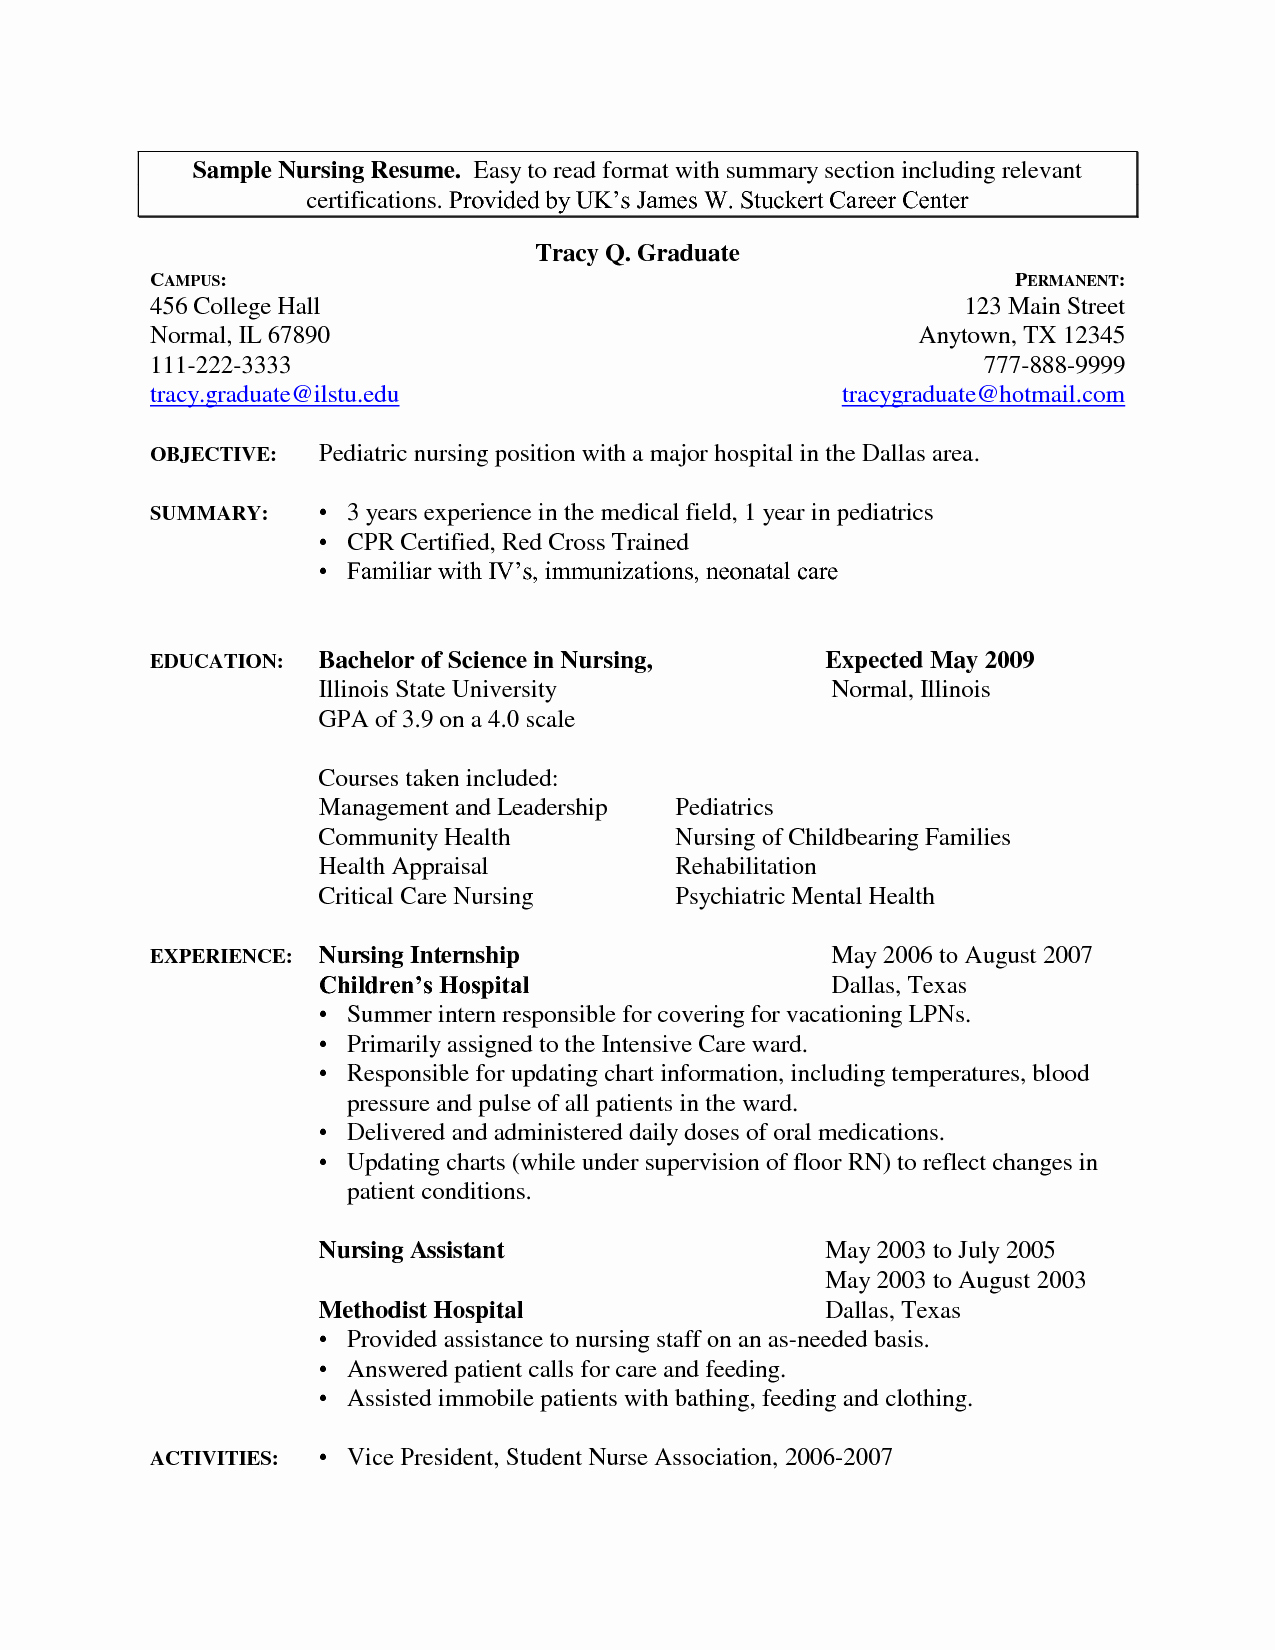 Medical assistant Student Resume Resume Ideas